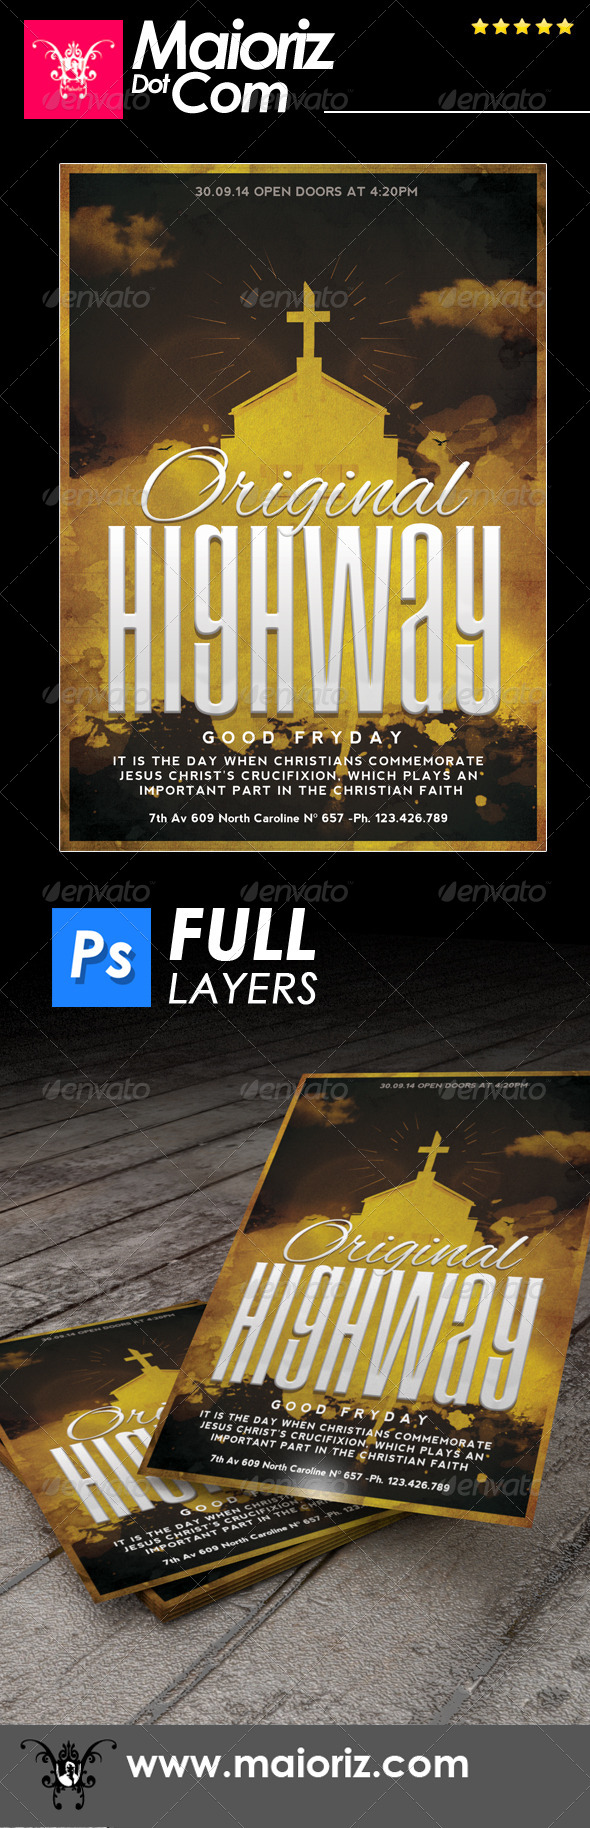 GraphicRiver Original Highway Cristian Flyer 6851293